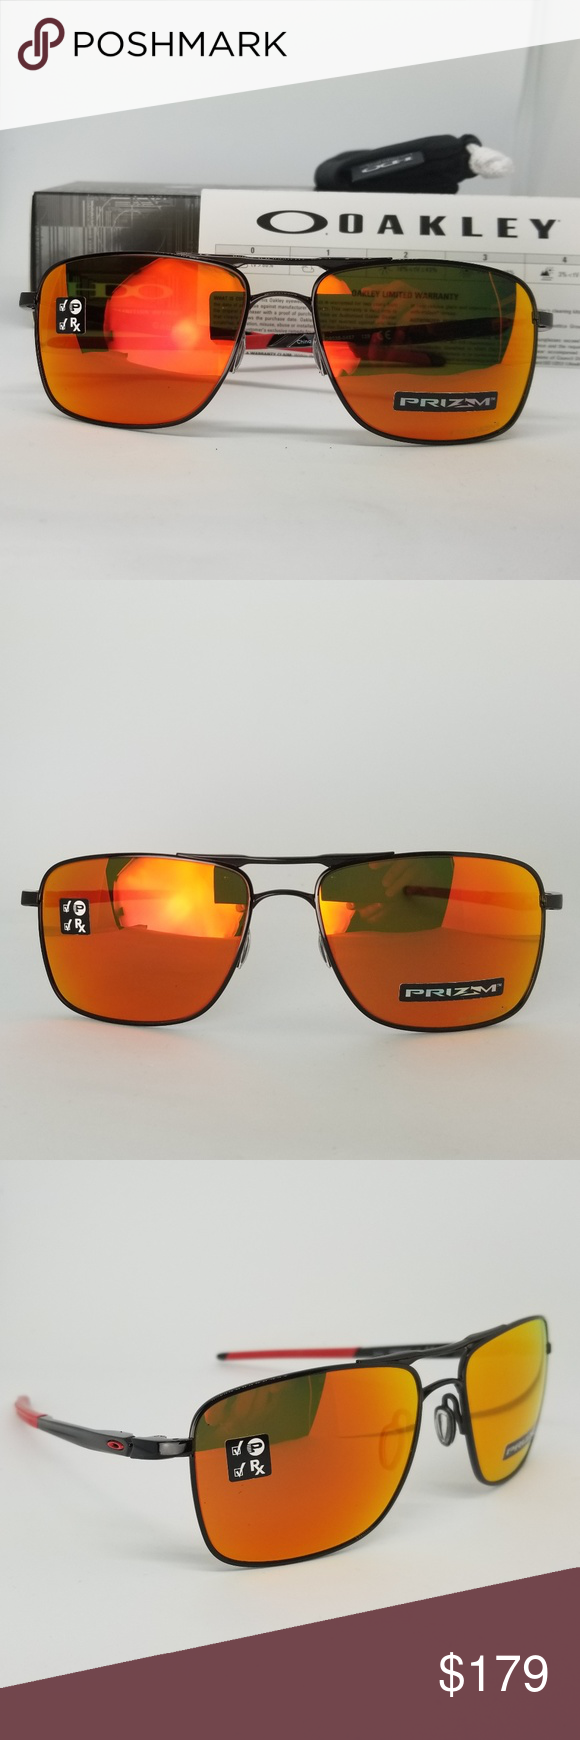 Oakley Polorized Sunglasses Rx Able Prizm Rubylens Brand